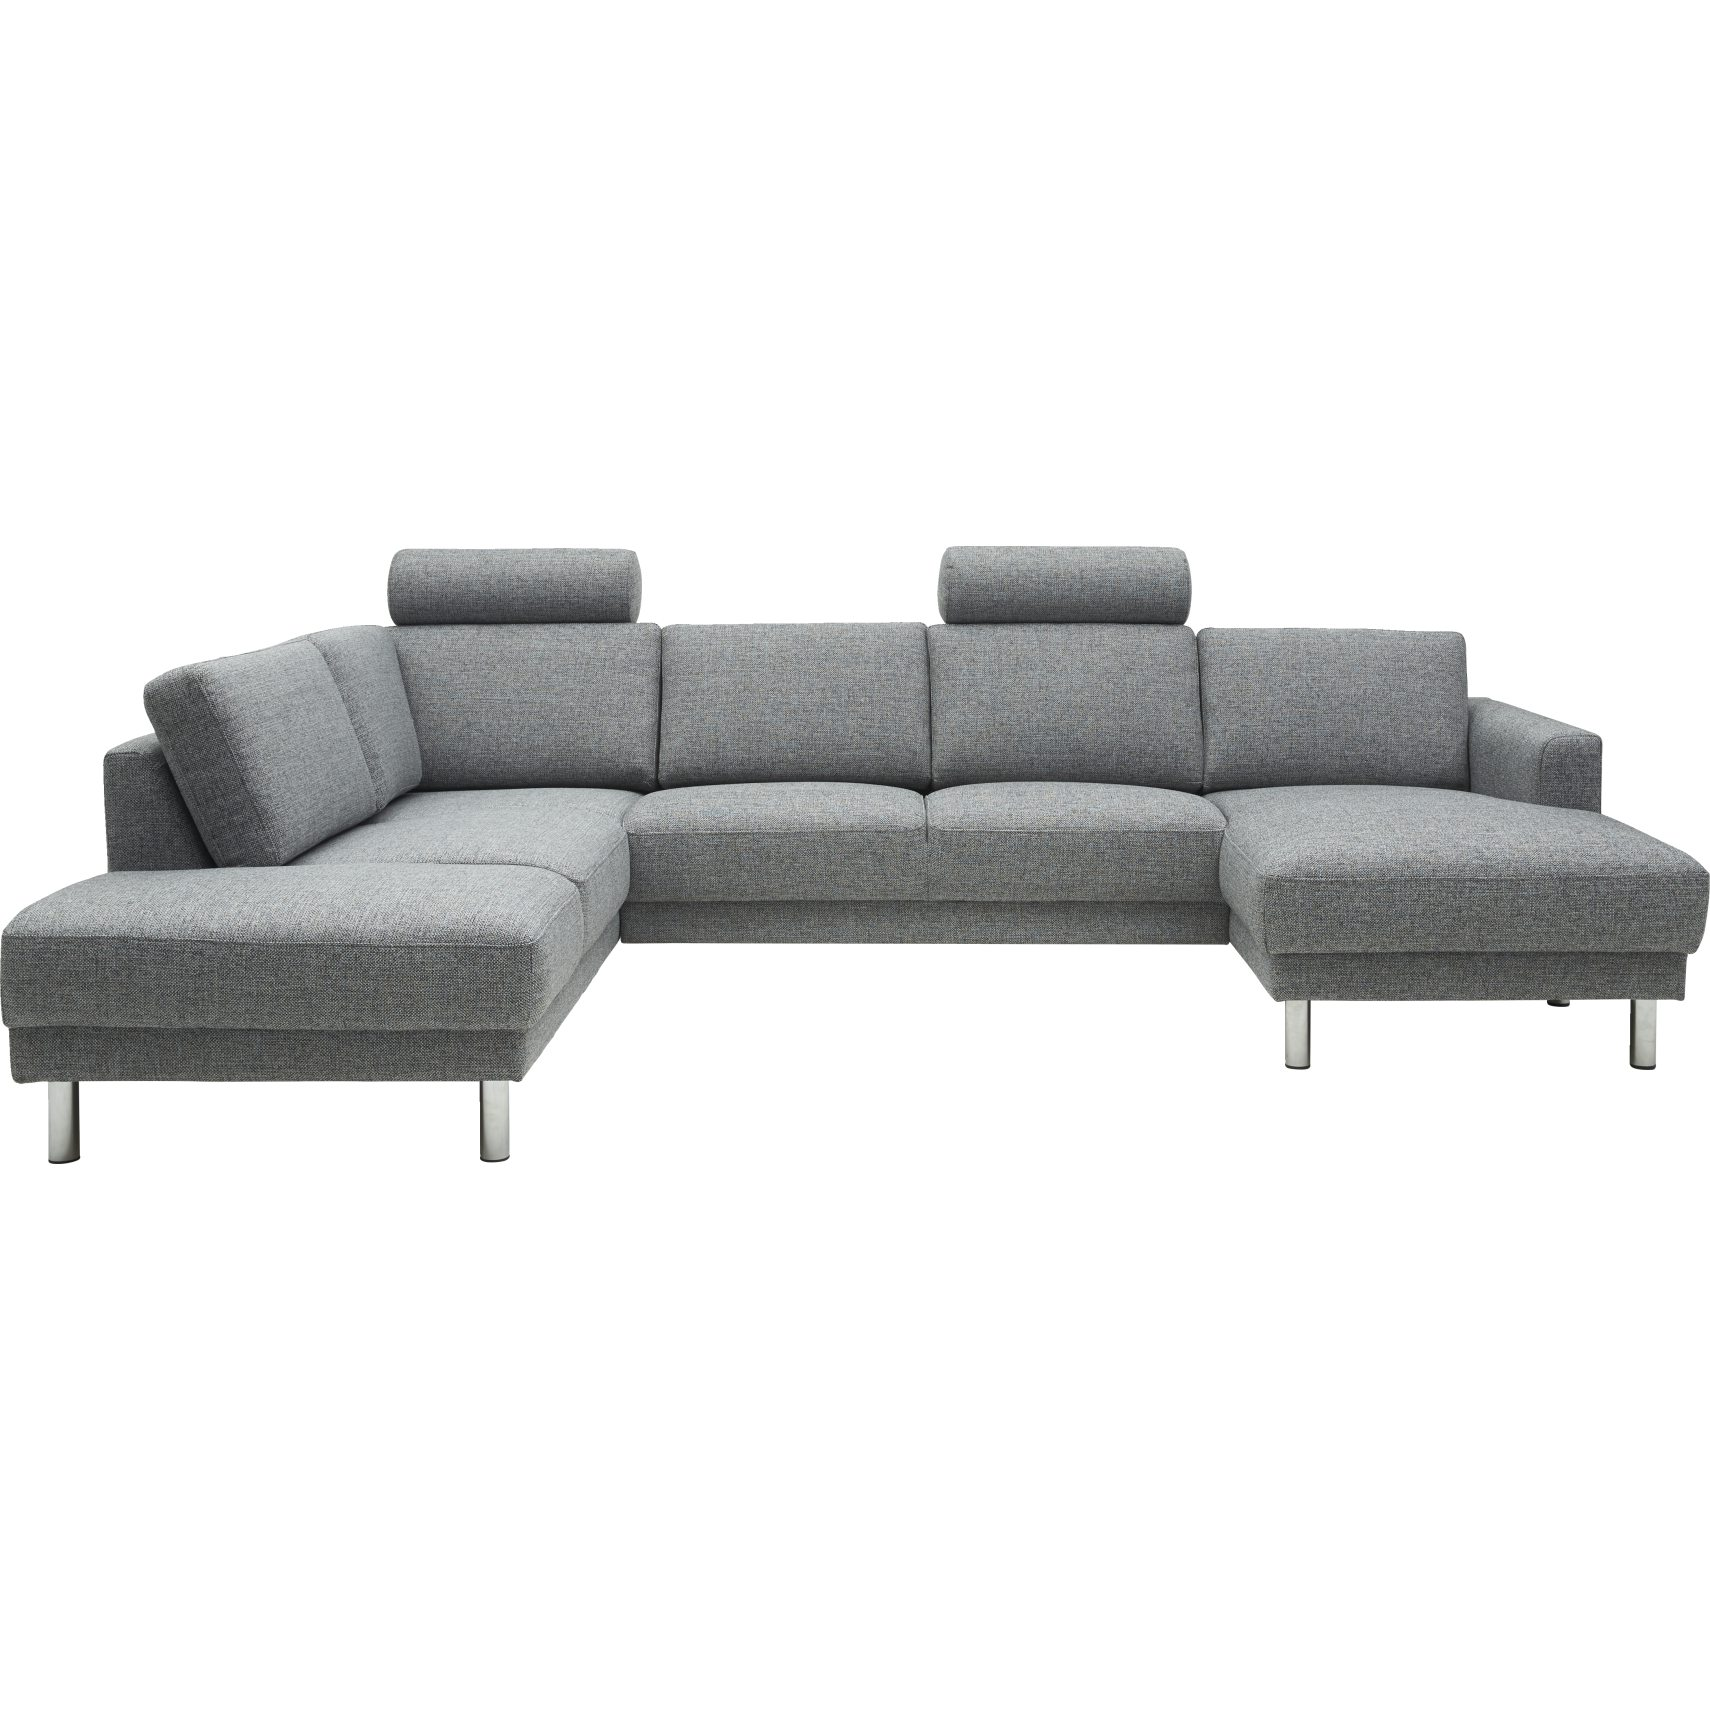 sofa med chaiselong sovesofa